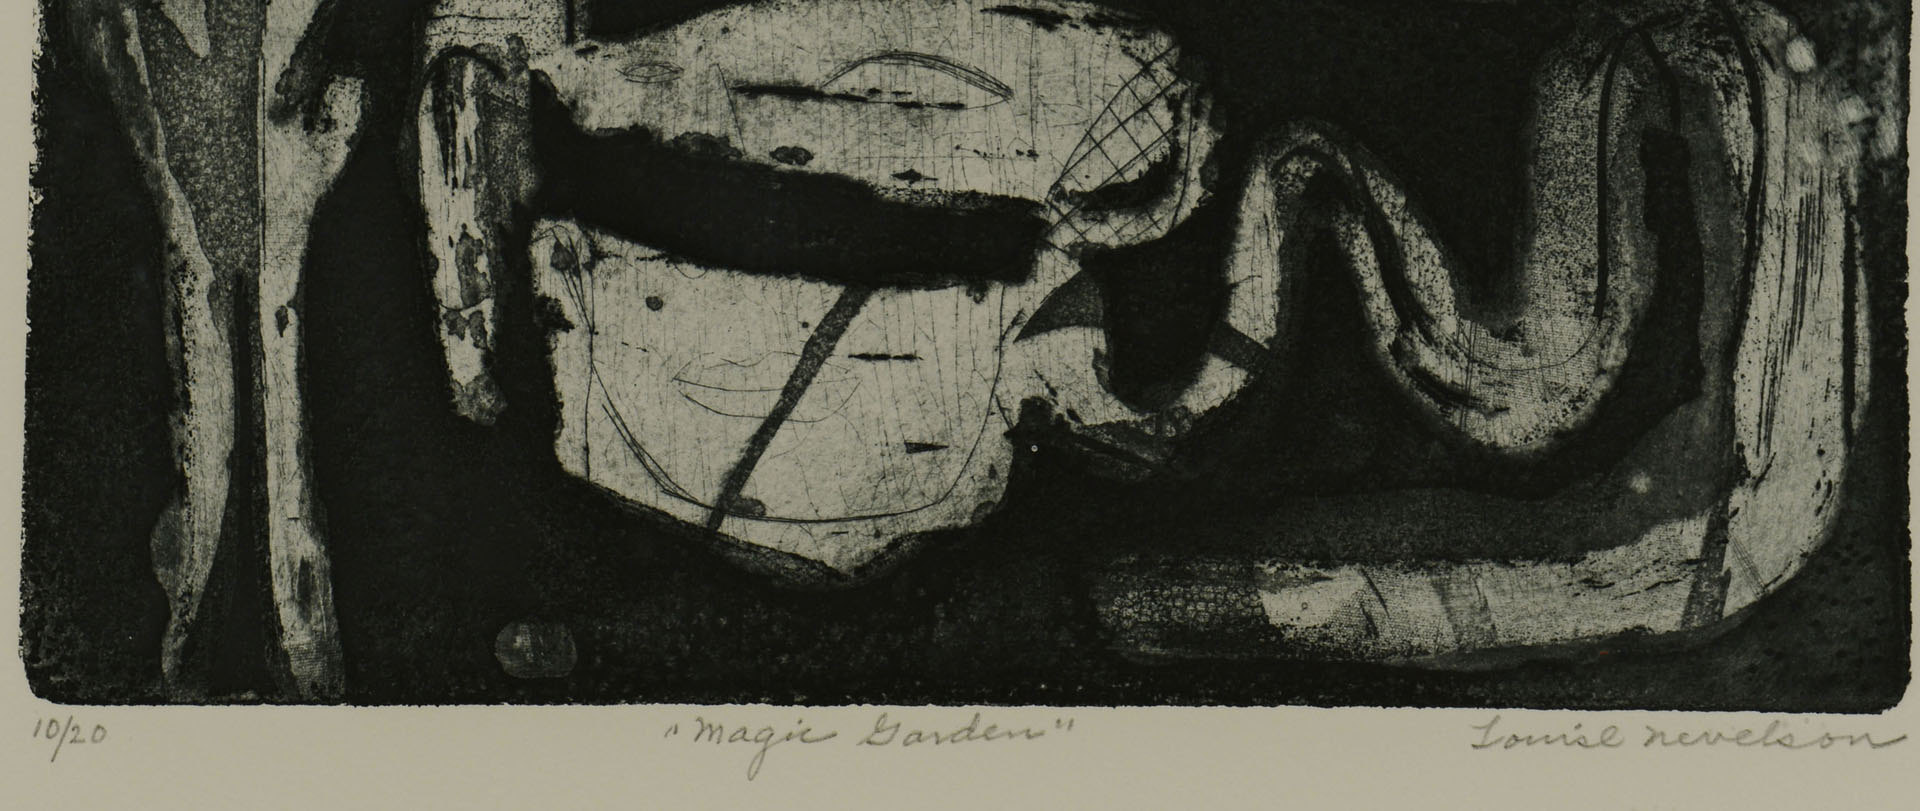 """Lot 3088160: Louise Nevelson Etching and Aquatint, """"Magic Garde"""